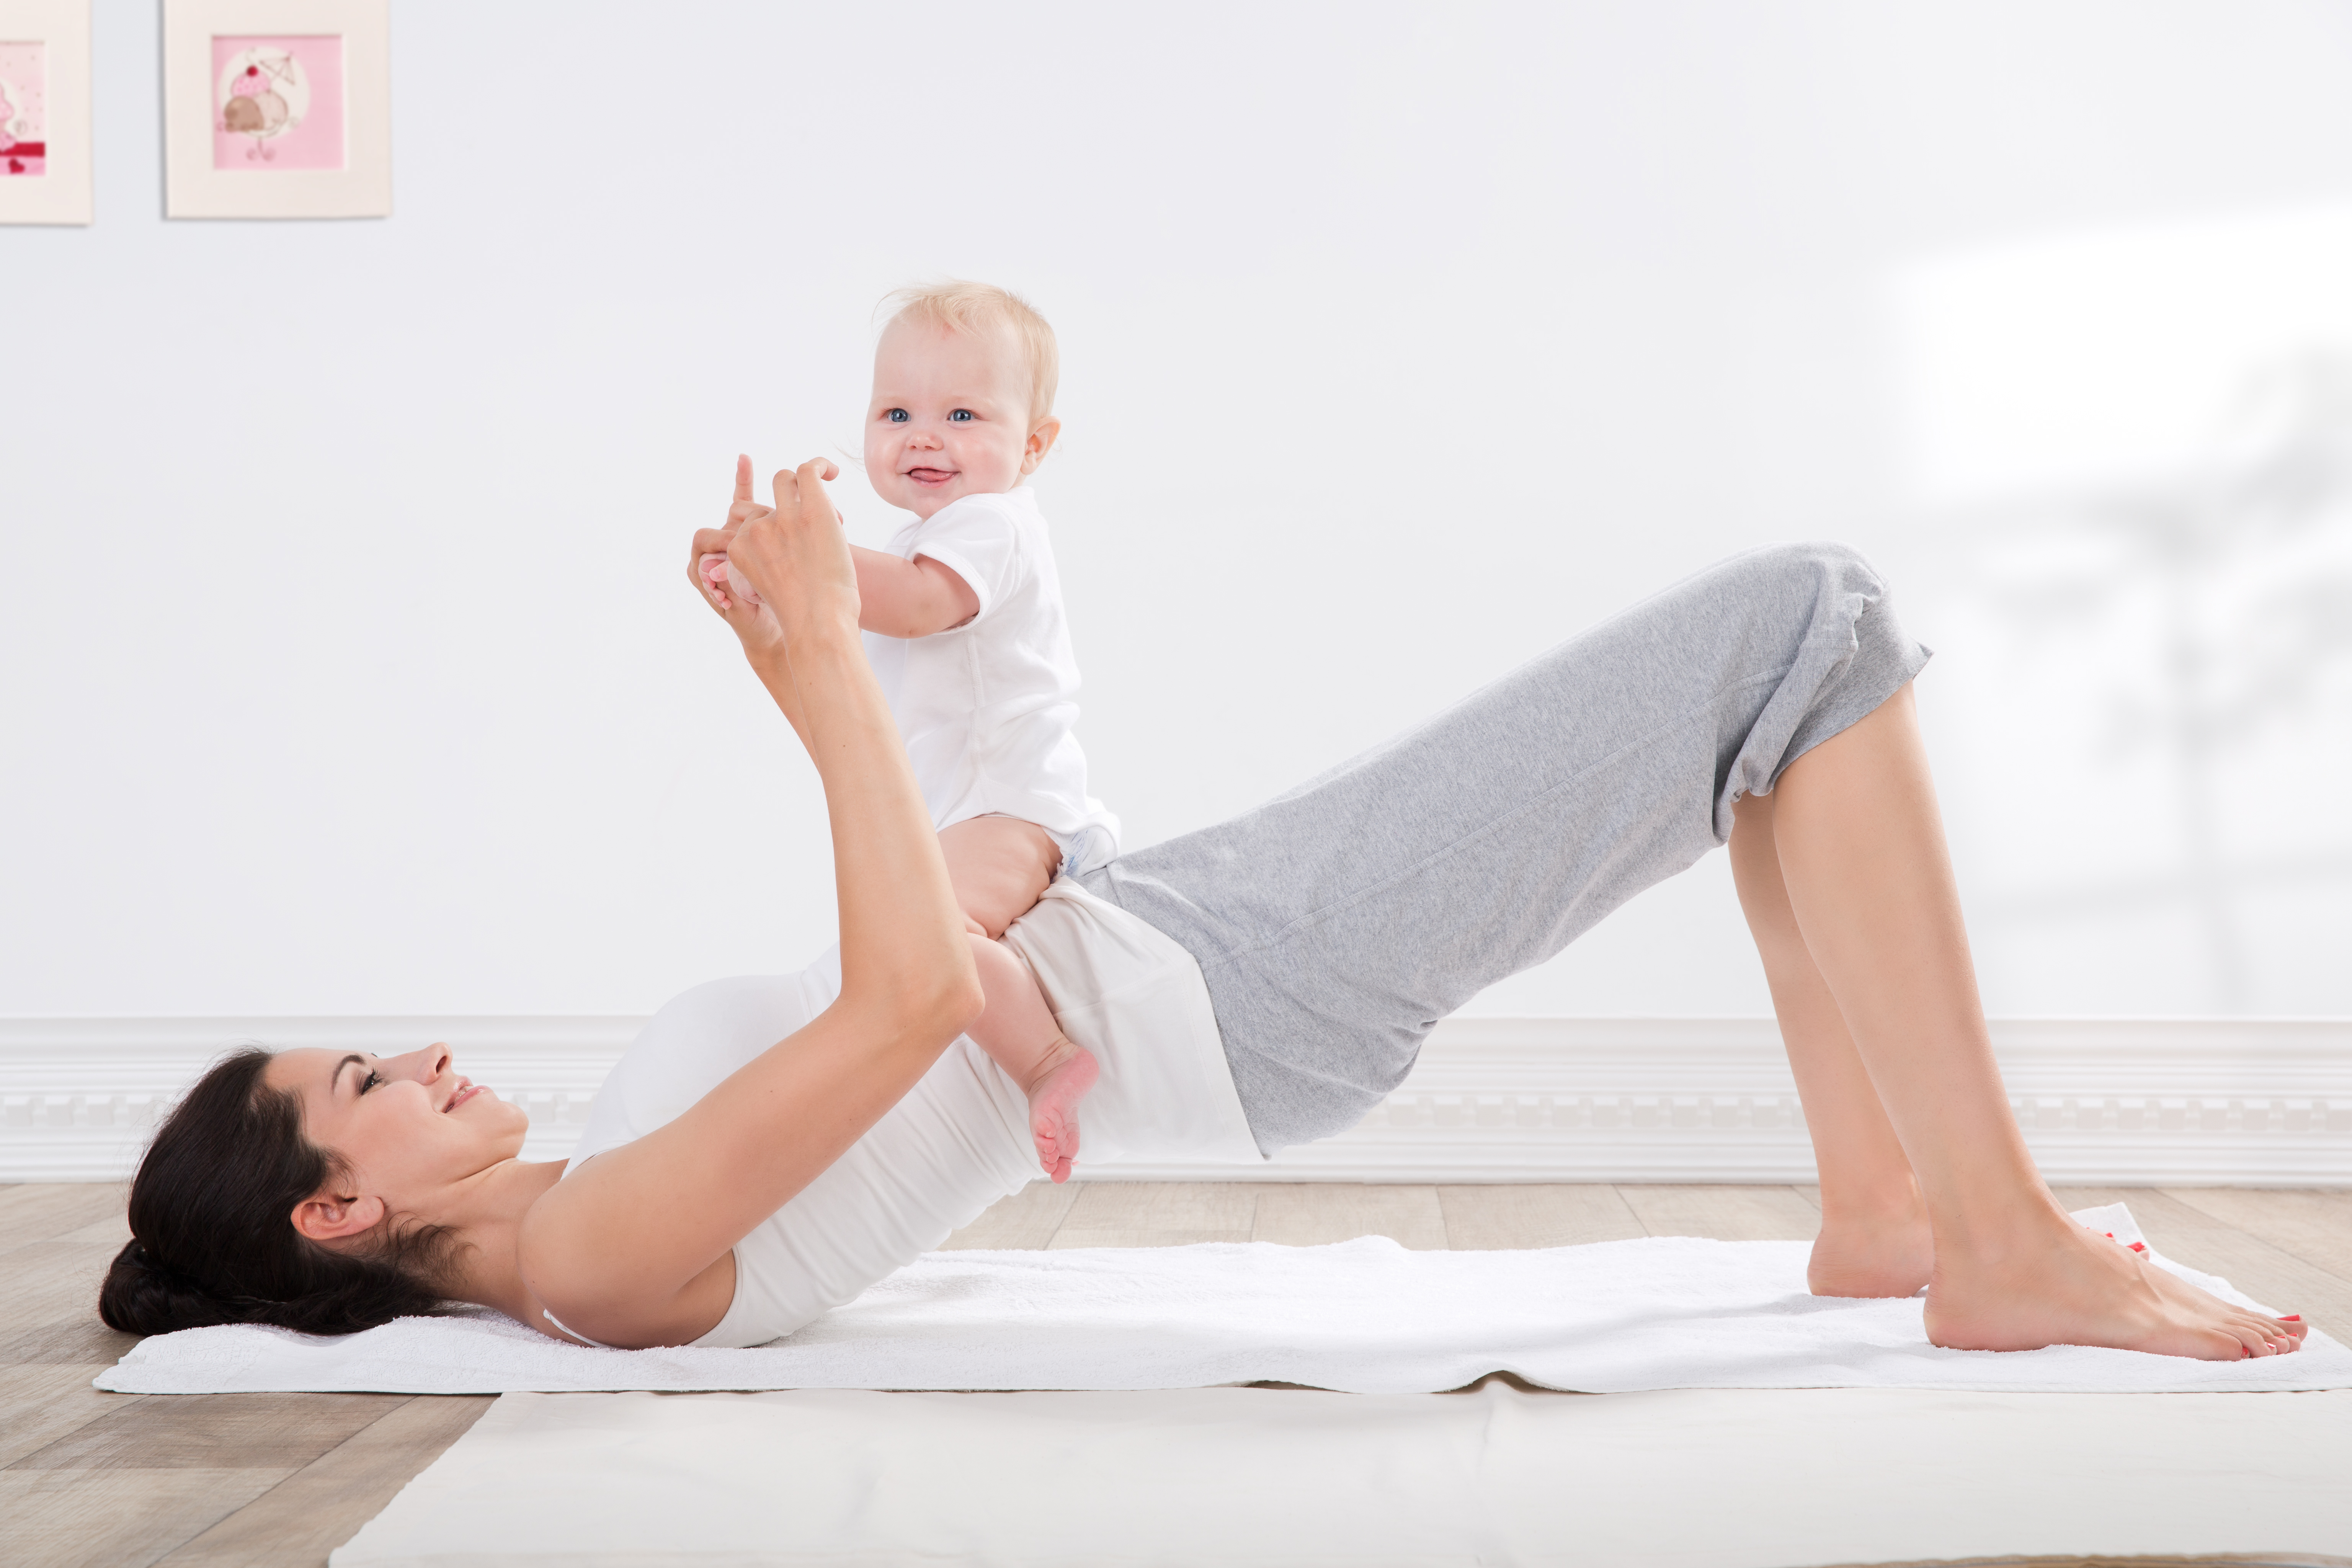 How to Healthily Lose Weight After Giving Birth